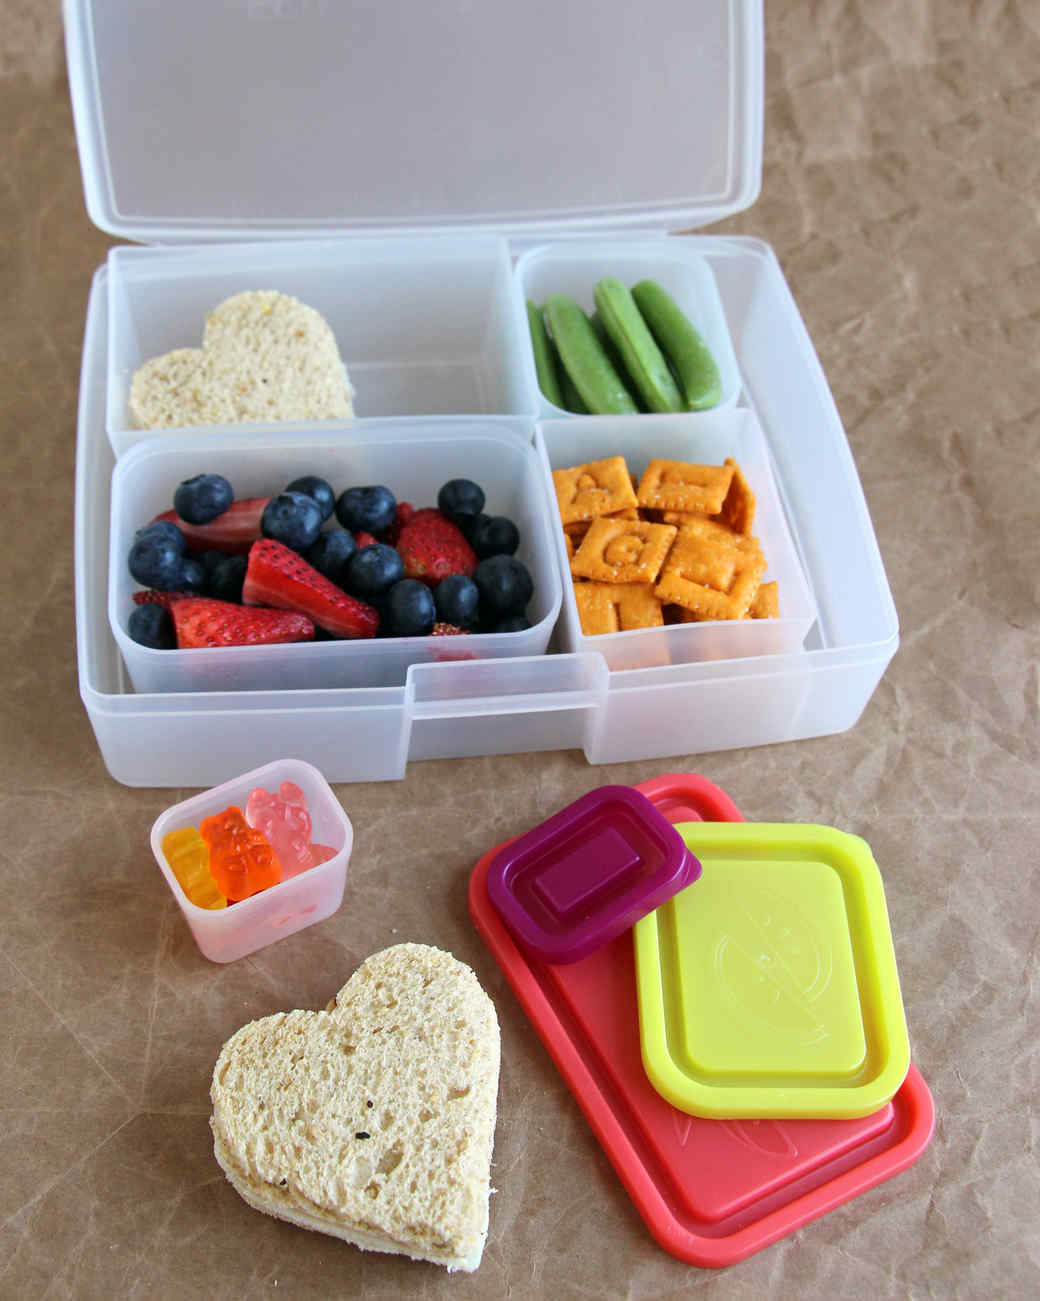 Best ideas about DIY Bento Box . Save or Pin Diy Bento Box Container Do It Your Self DIY Now.